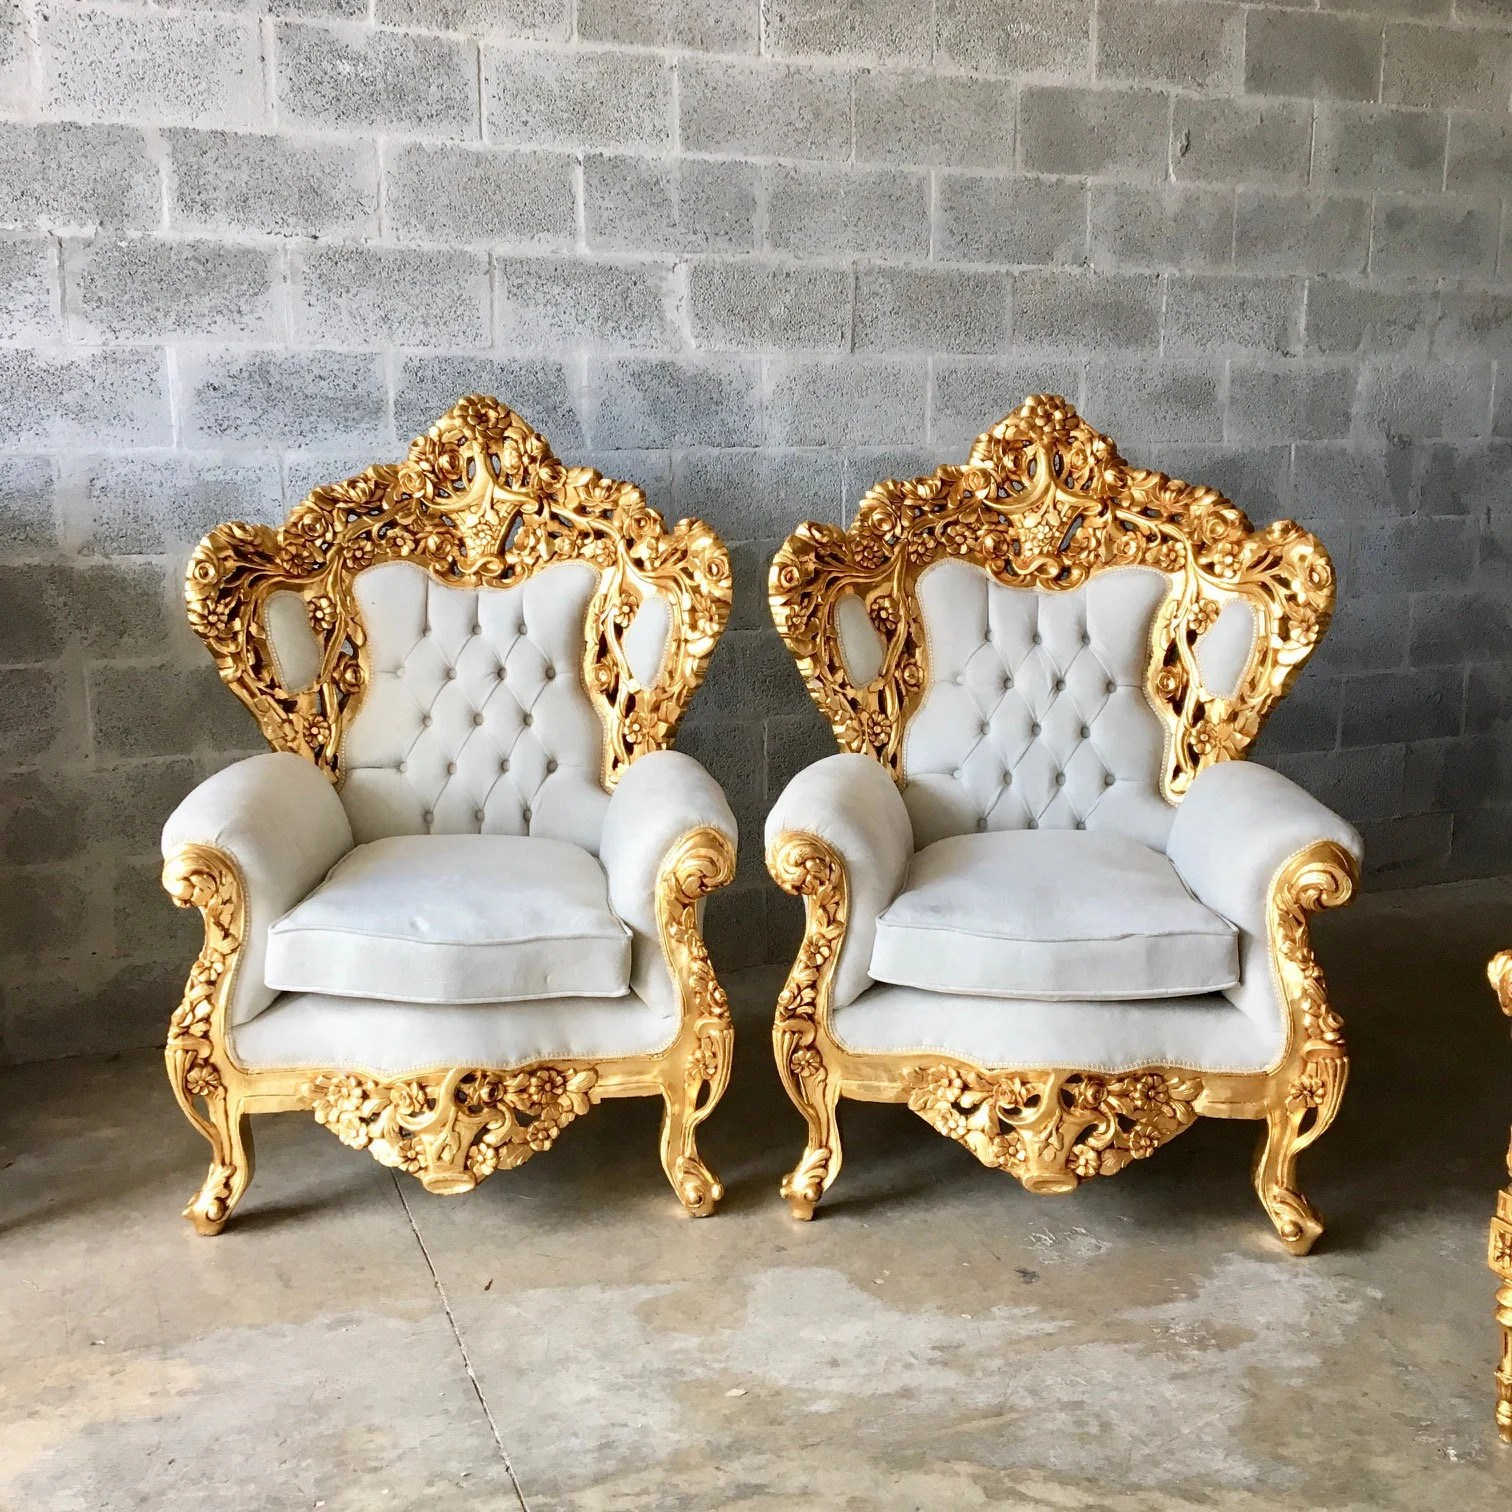 velvet tufted chair massage stand for baroque throne rococo french sofa etsy image 0